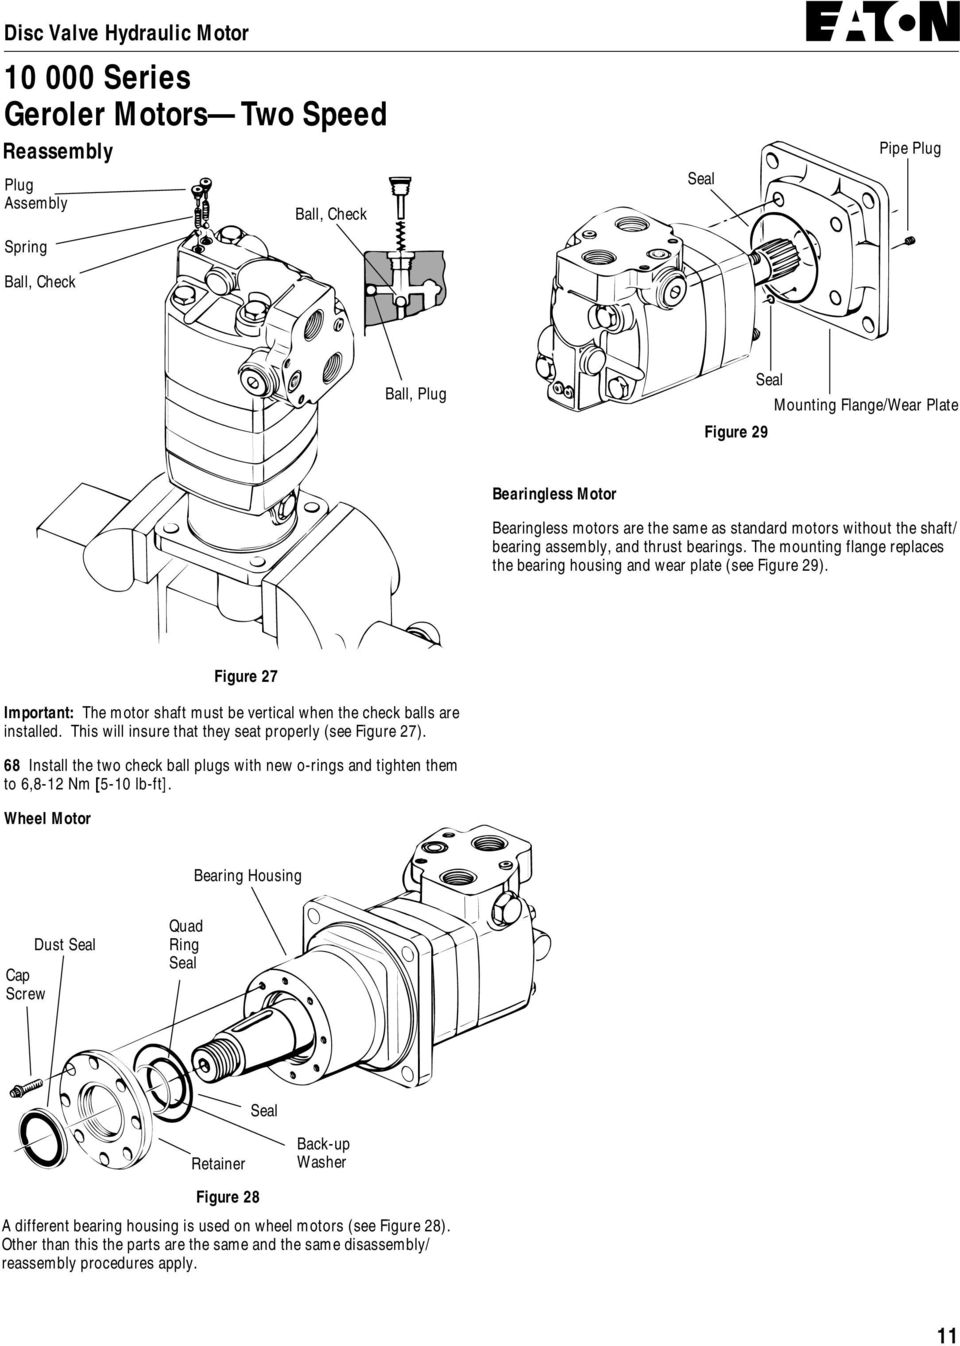 Figure 27 Important: The motor shaft must be vertical when the check balls are installed. This will insure that they seat properly (see Figure 27).